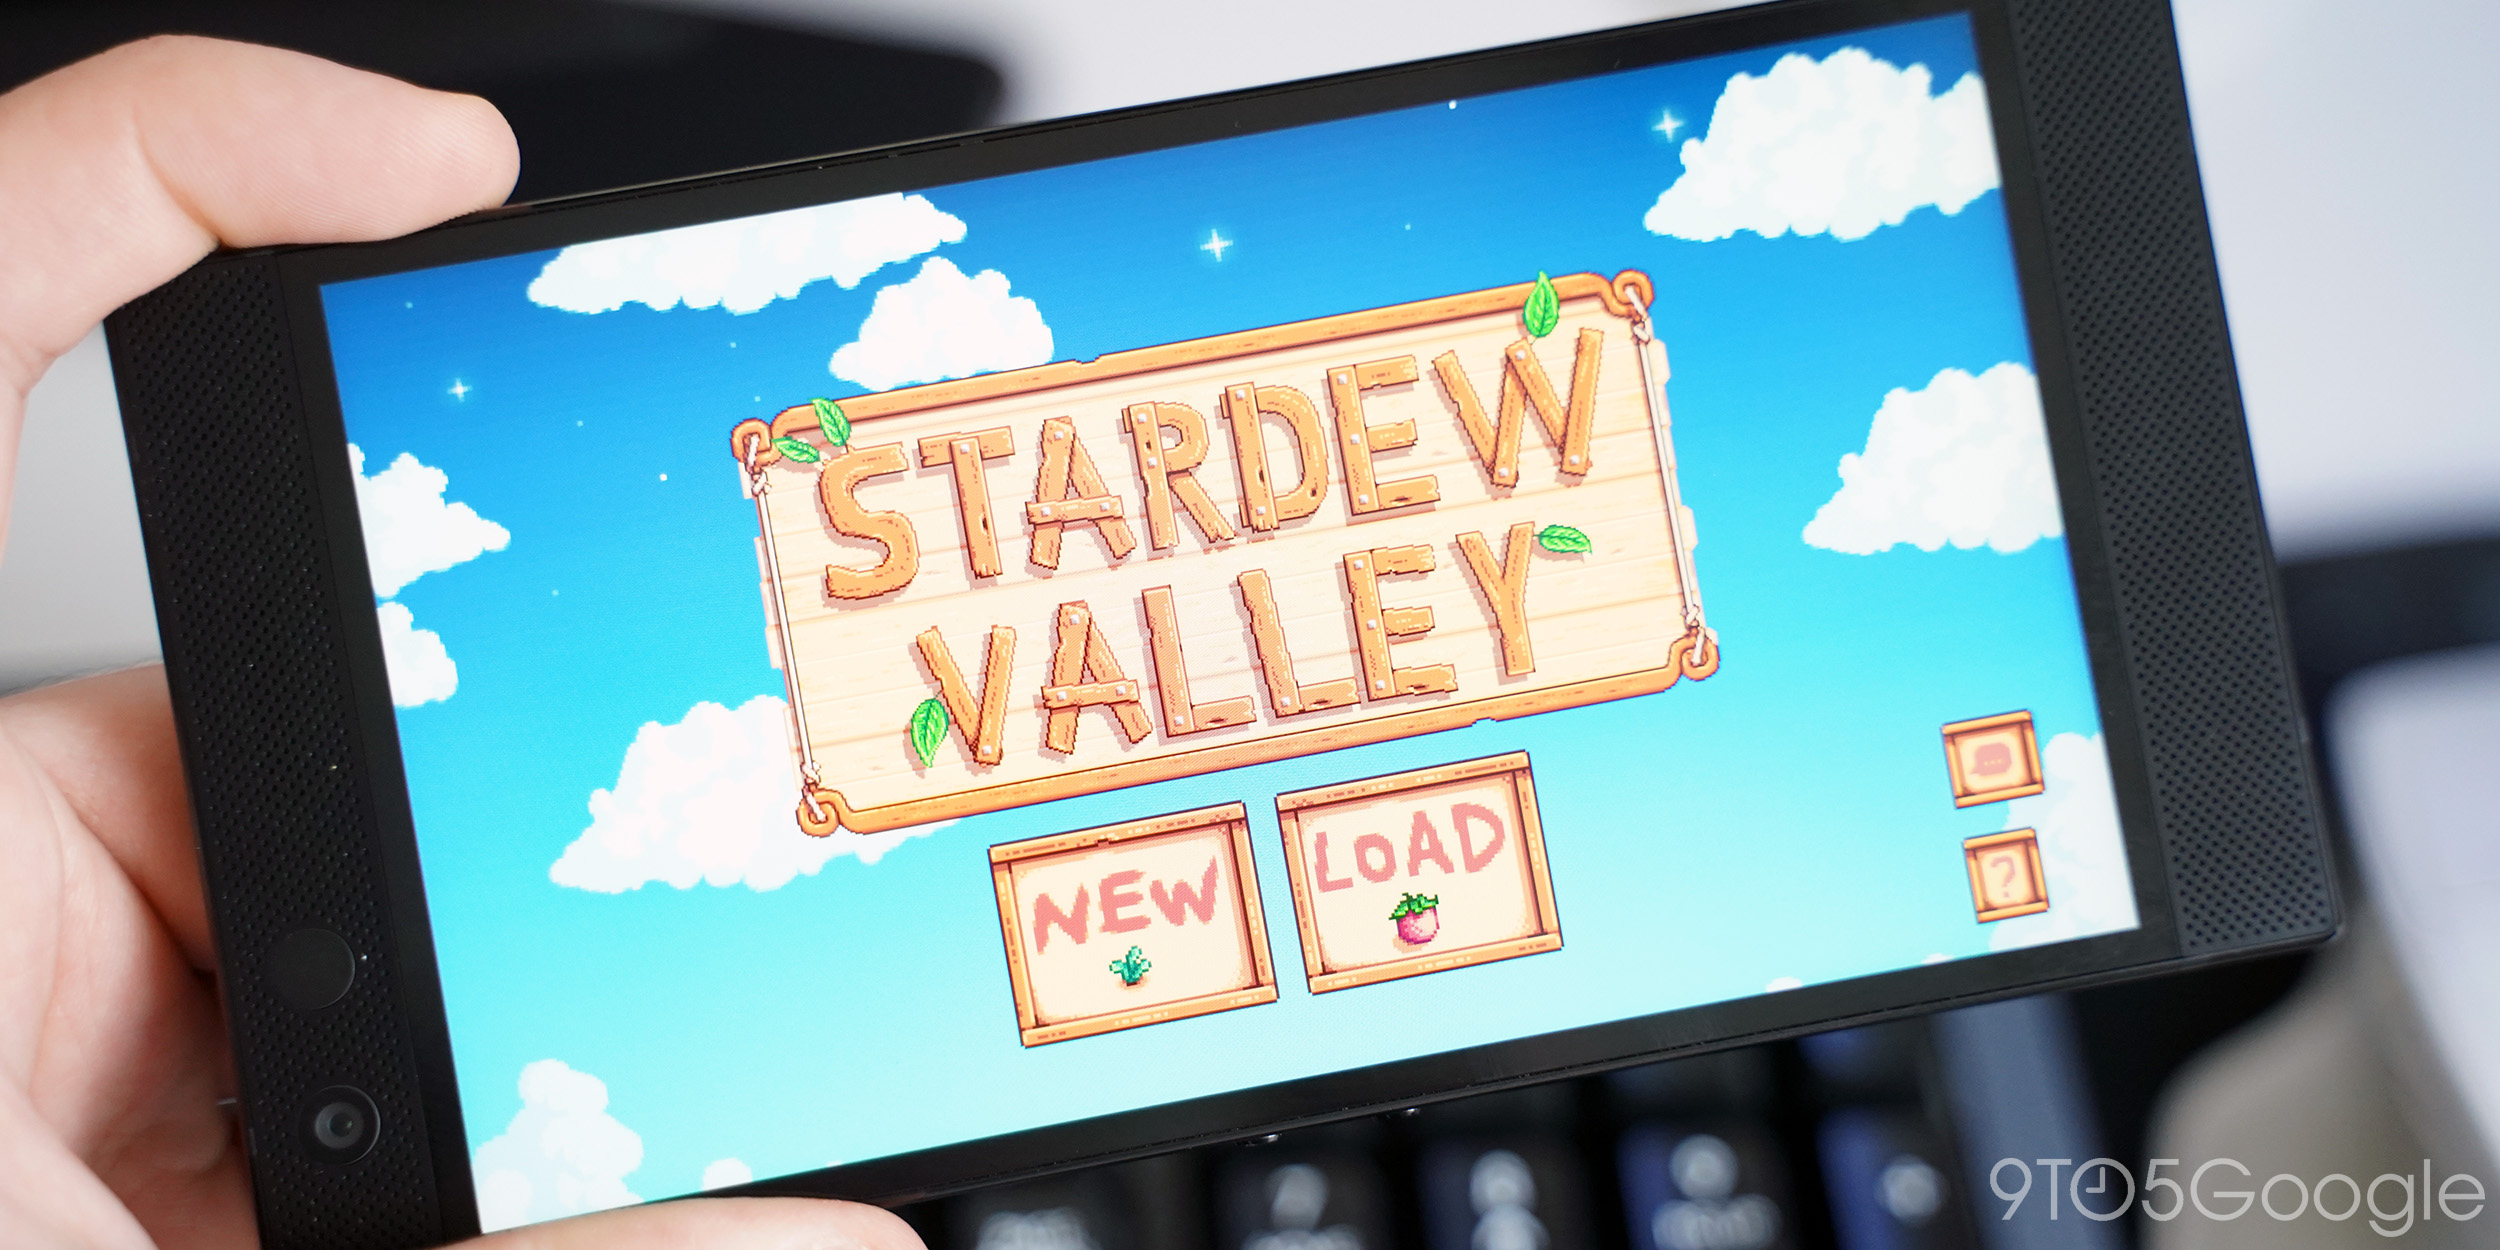 Stardew Valley arrives on Android, how to transfer save files